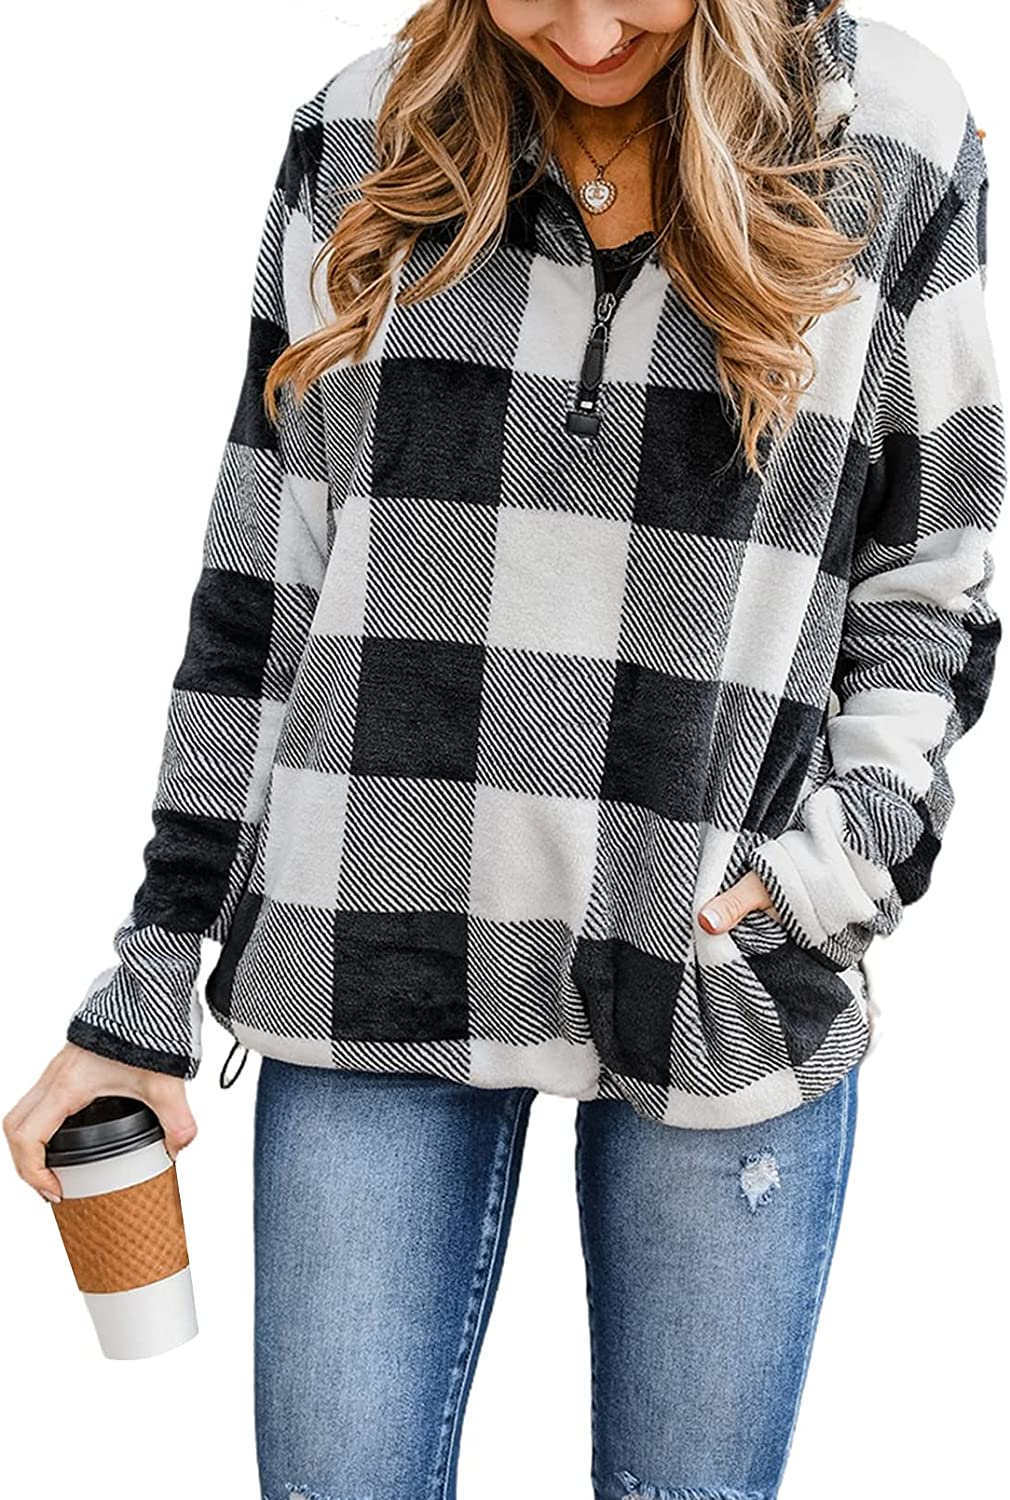 Astylish Womens 1/4 Zip Sweatshirts Casual Loose Long Sleeve Plaid Sweater Pullover with Pockets